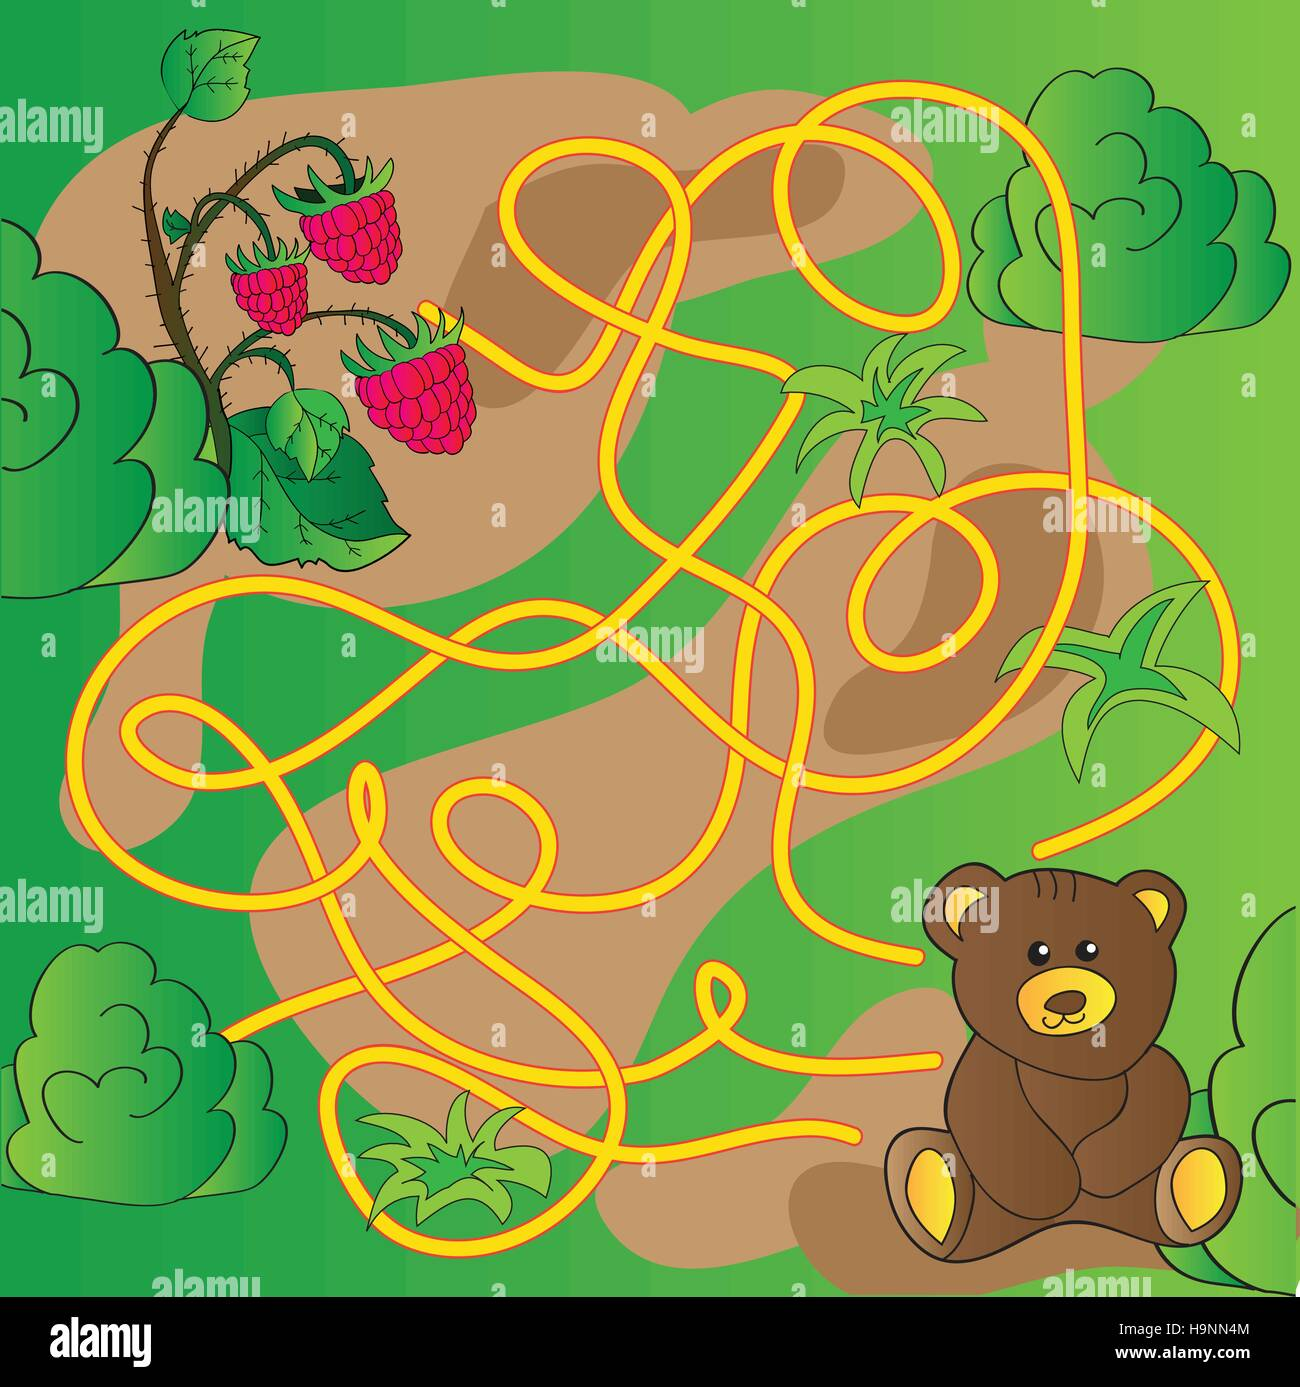 Cartoon Illustration of Education Maze or Labyrinth Game for Preschool Children with Funny Bear Animal and raspberries - Stock Image